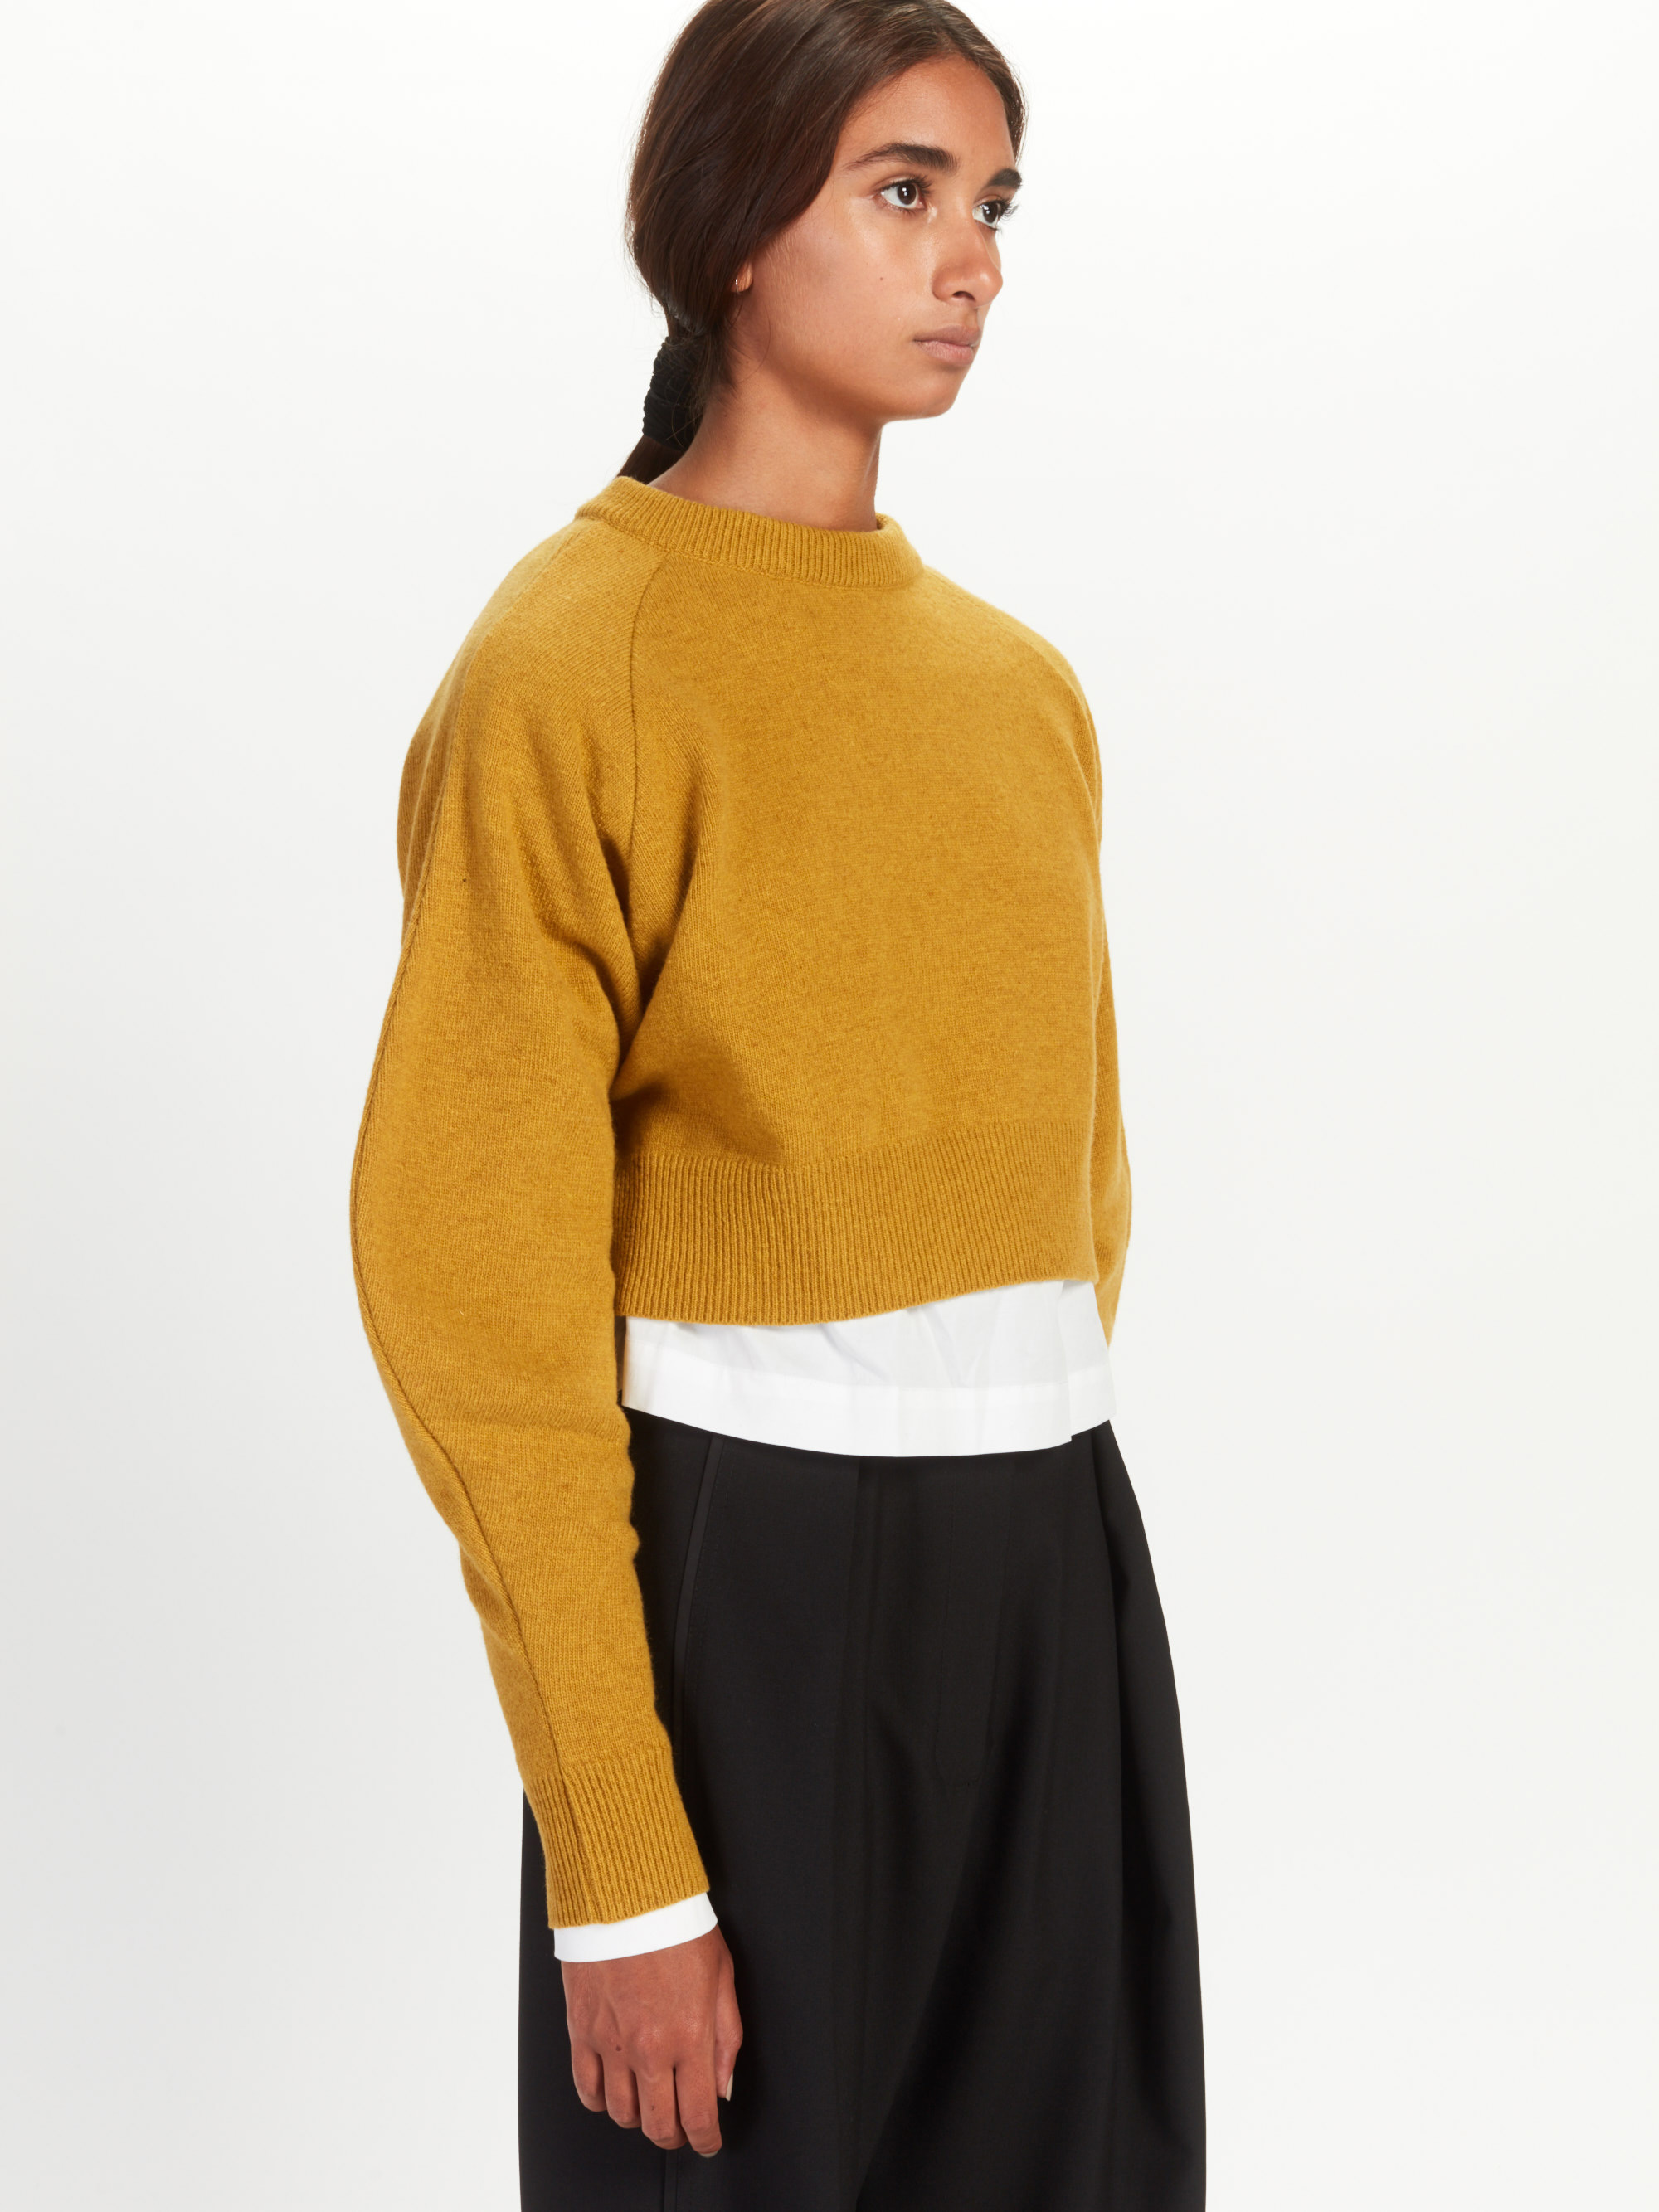 jt_sweater-woolf_25-16-2019__picture-3634